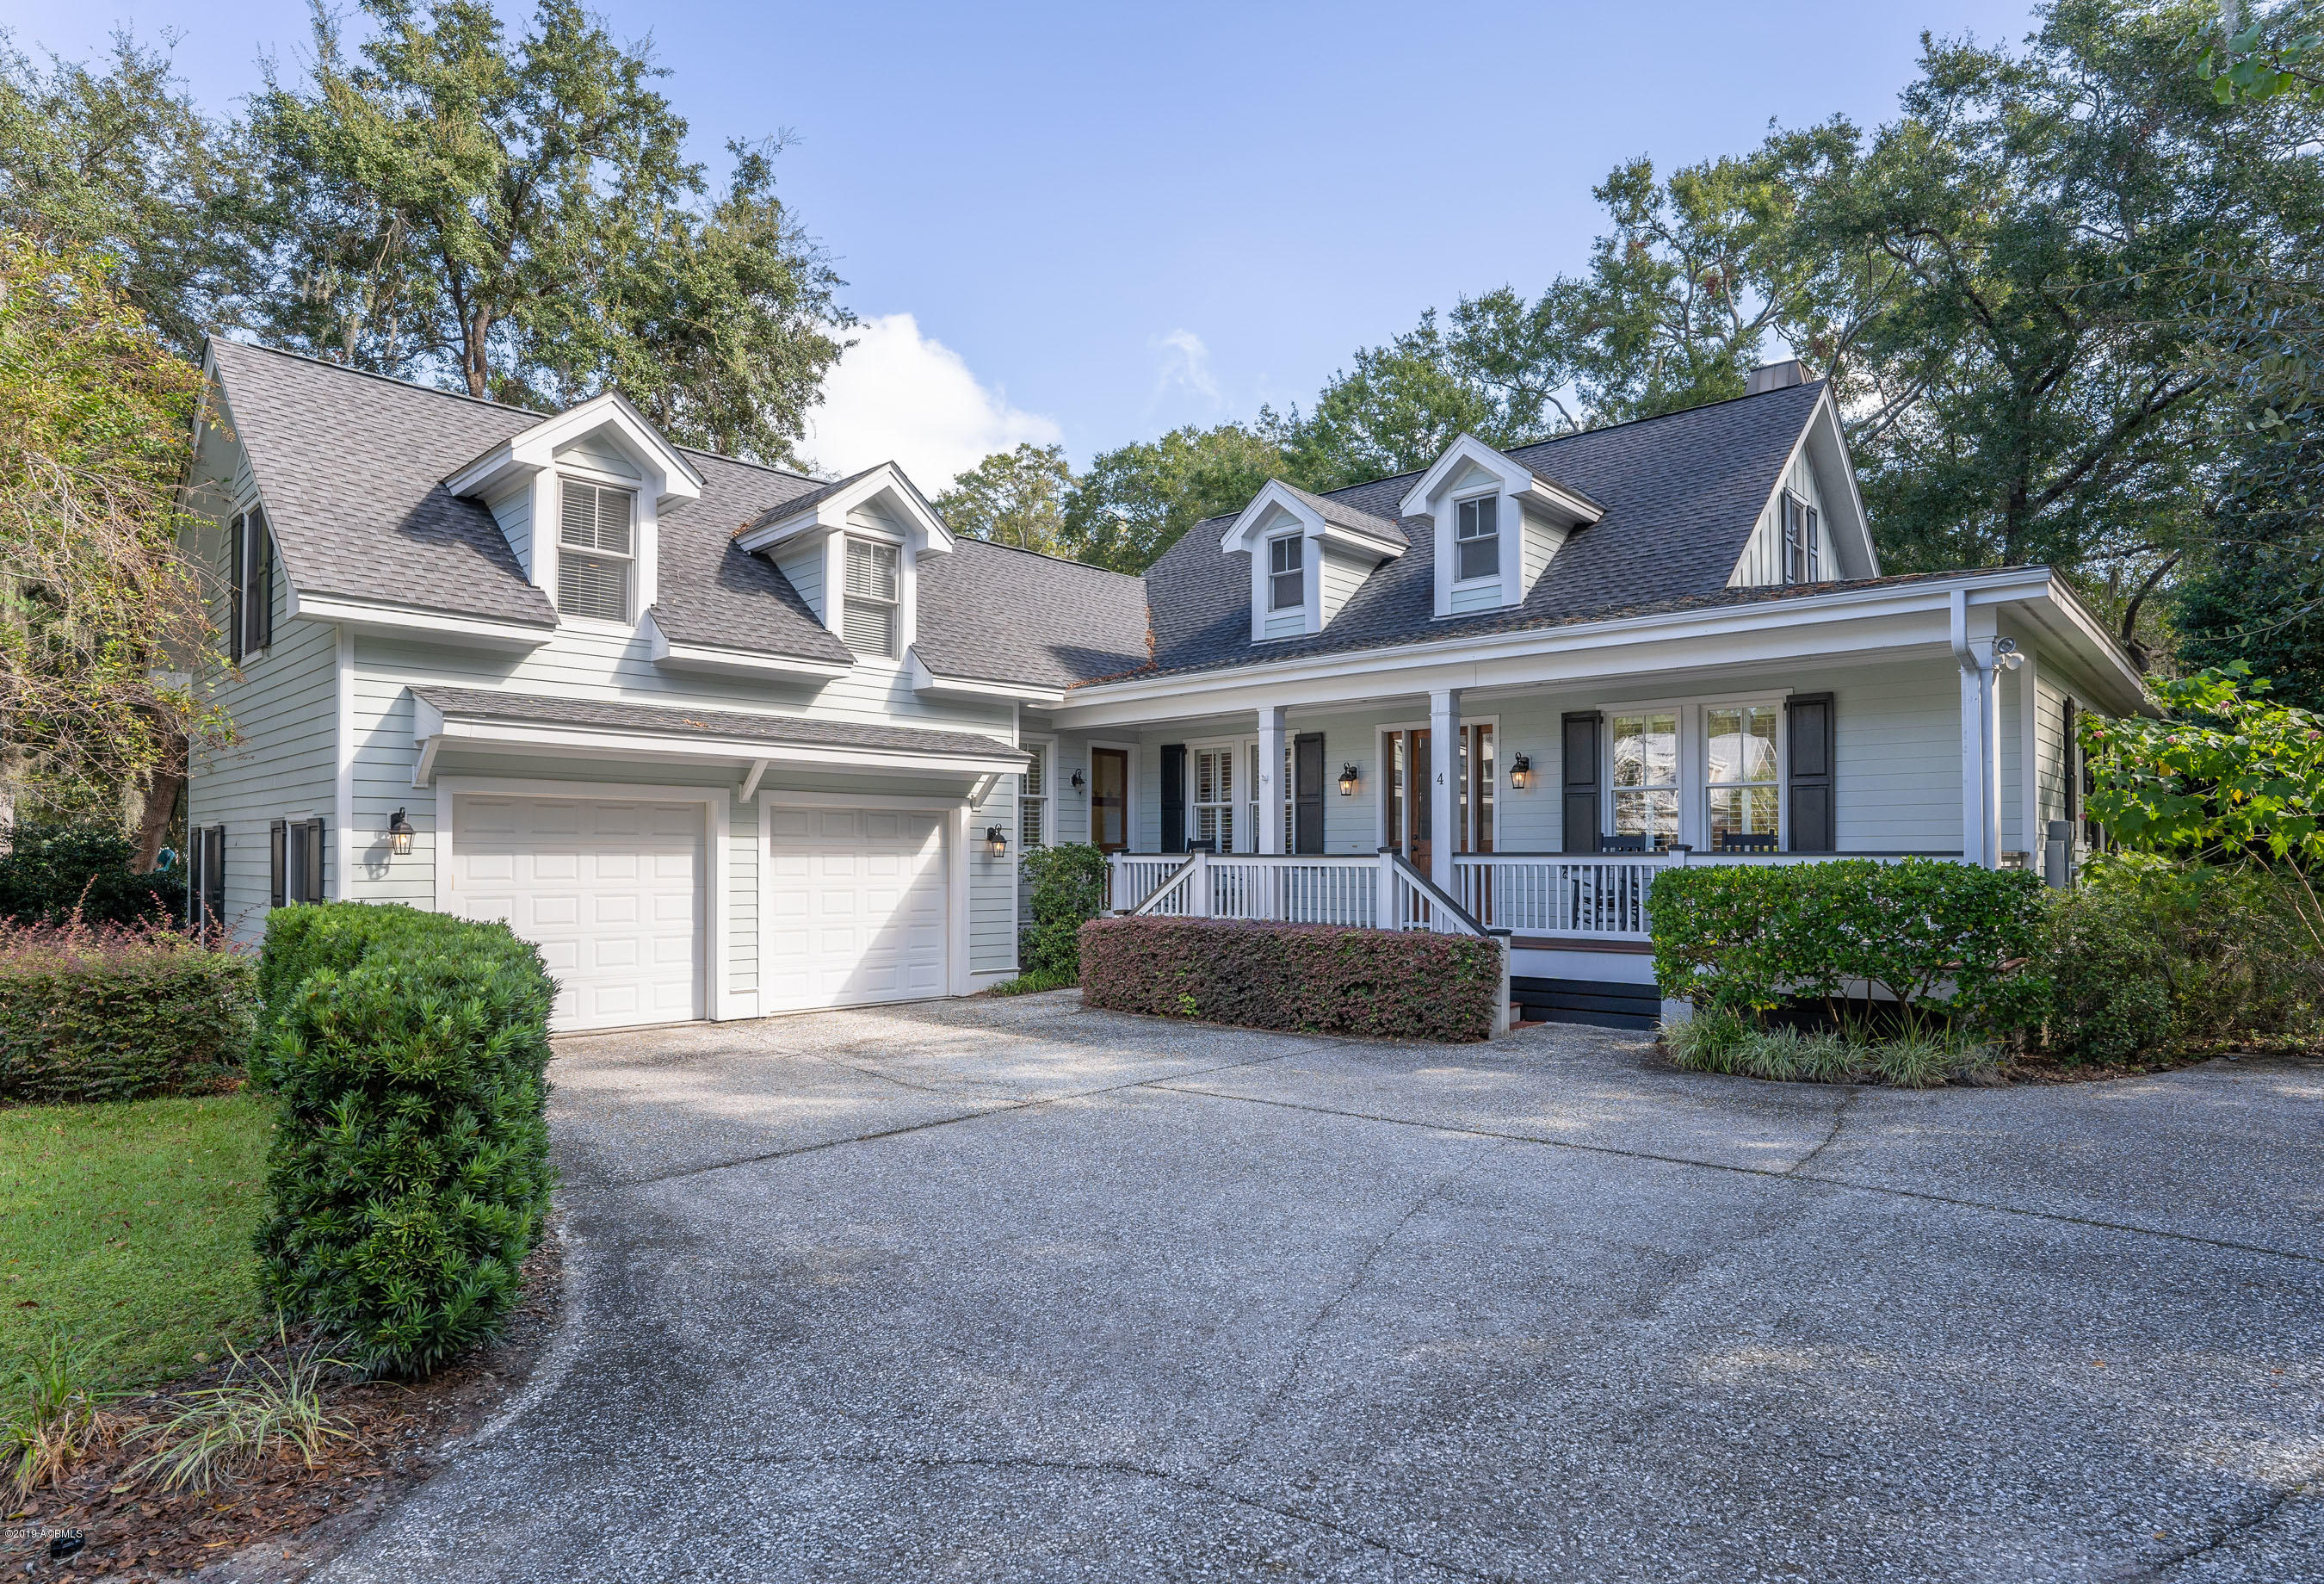 Photo of 4 High Point, Beaufort, SC 29907